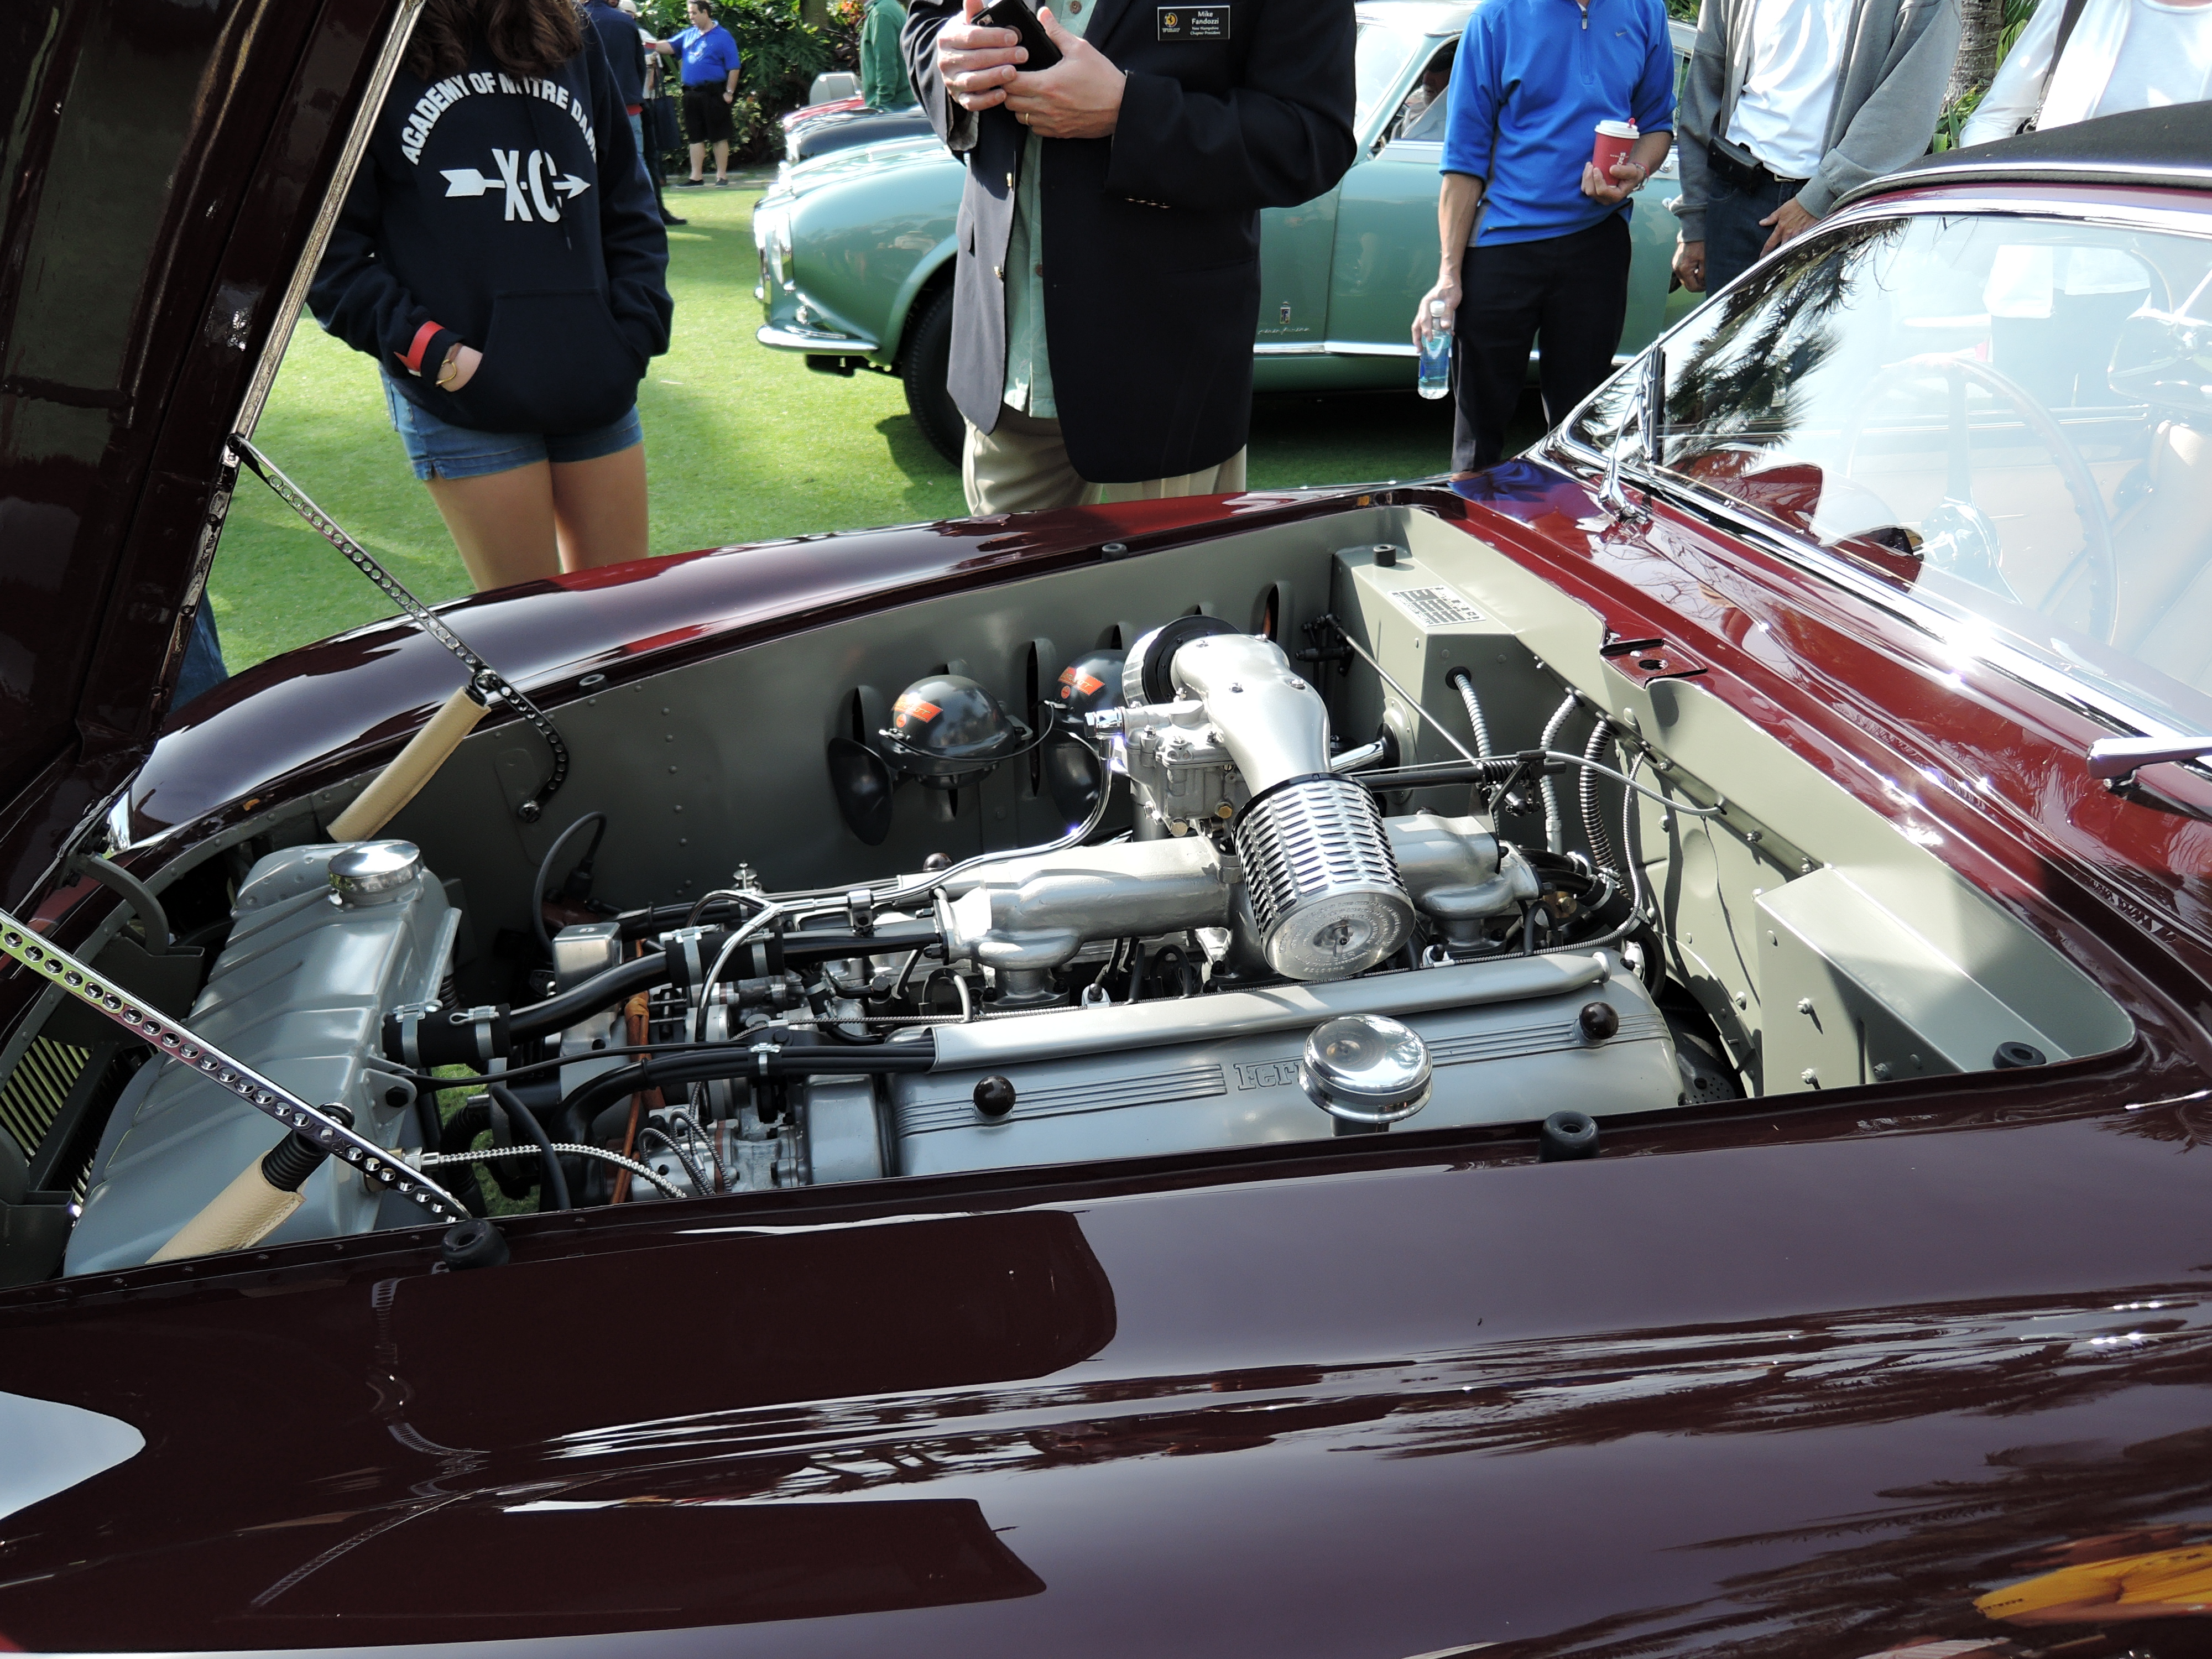 engine of dark red 1951 Ferrari 212 Export Vignale; S/n 0110 E - Cavallino 2017 Concorso d'Eleganza